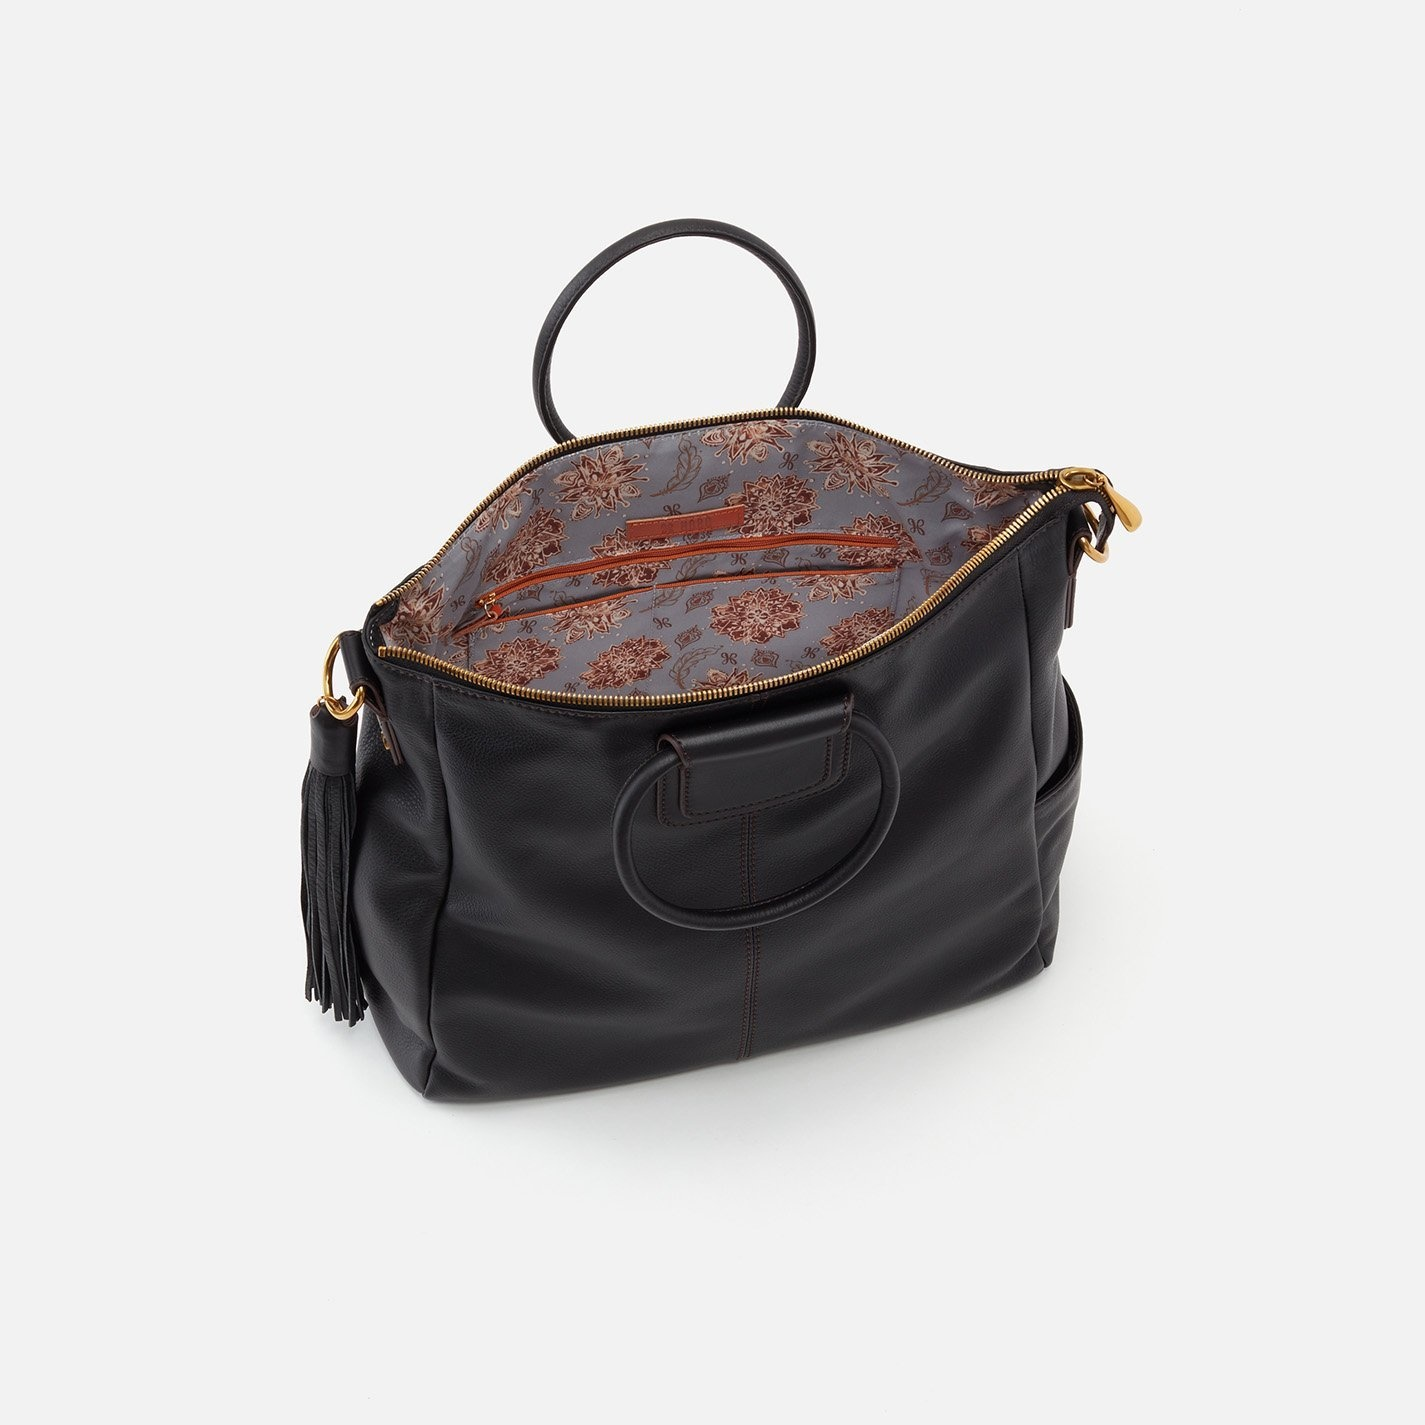 Hobo HOBO Sheila Travel Bag